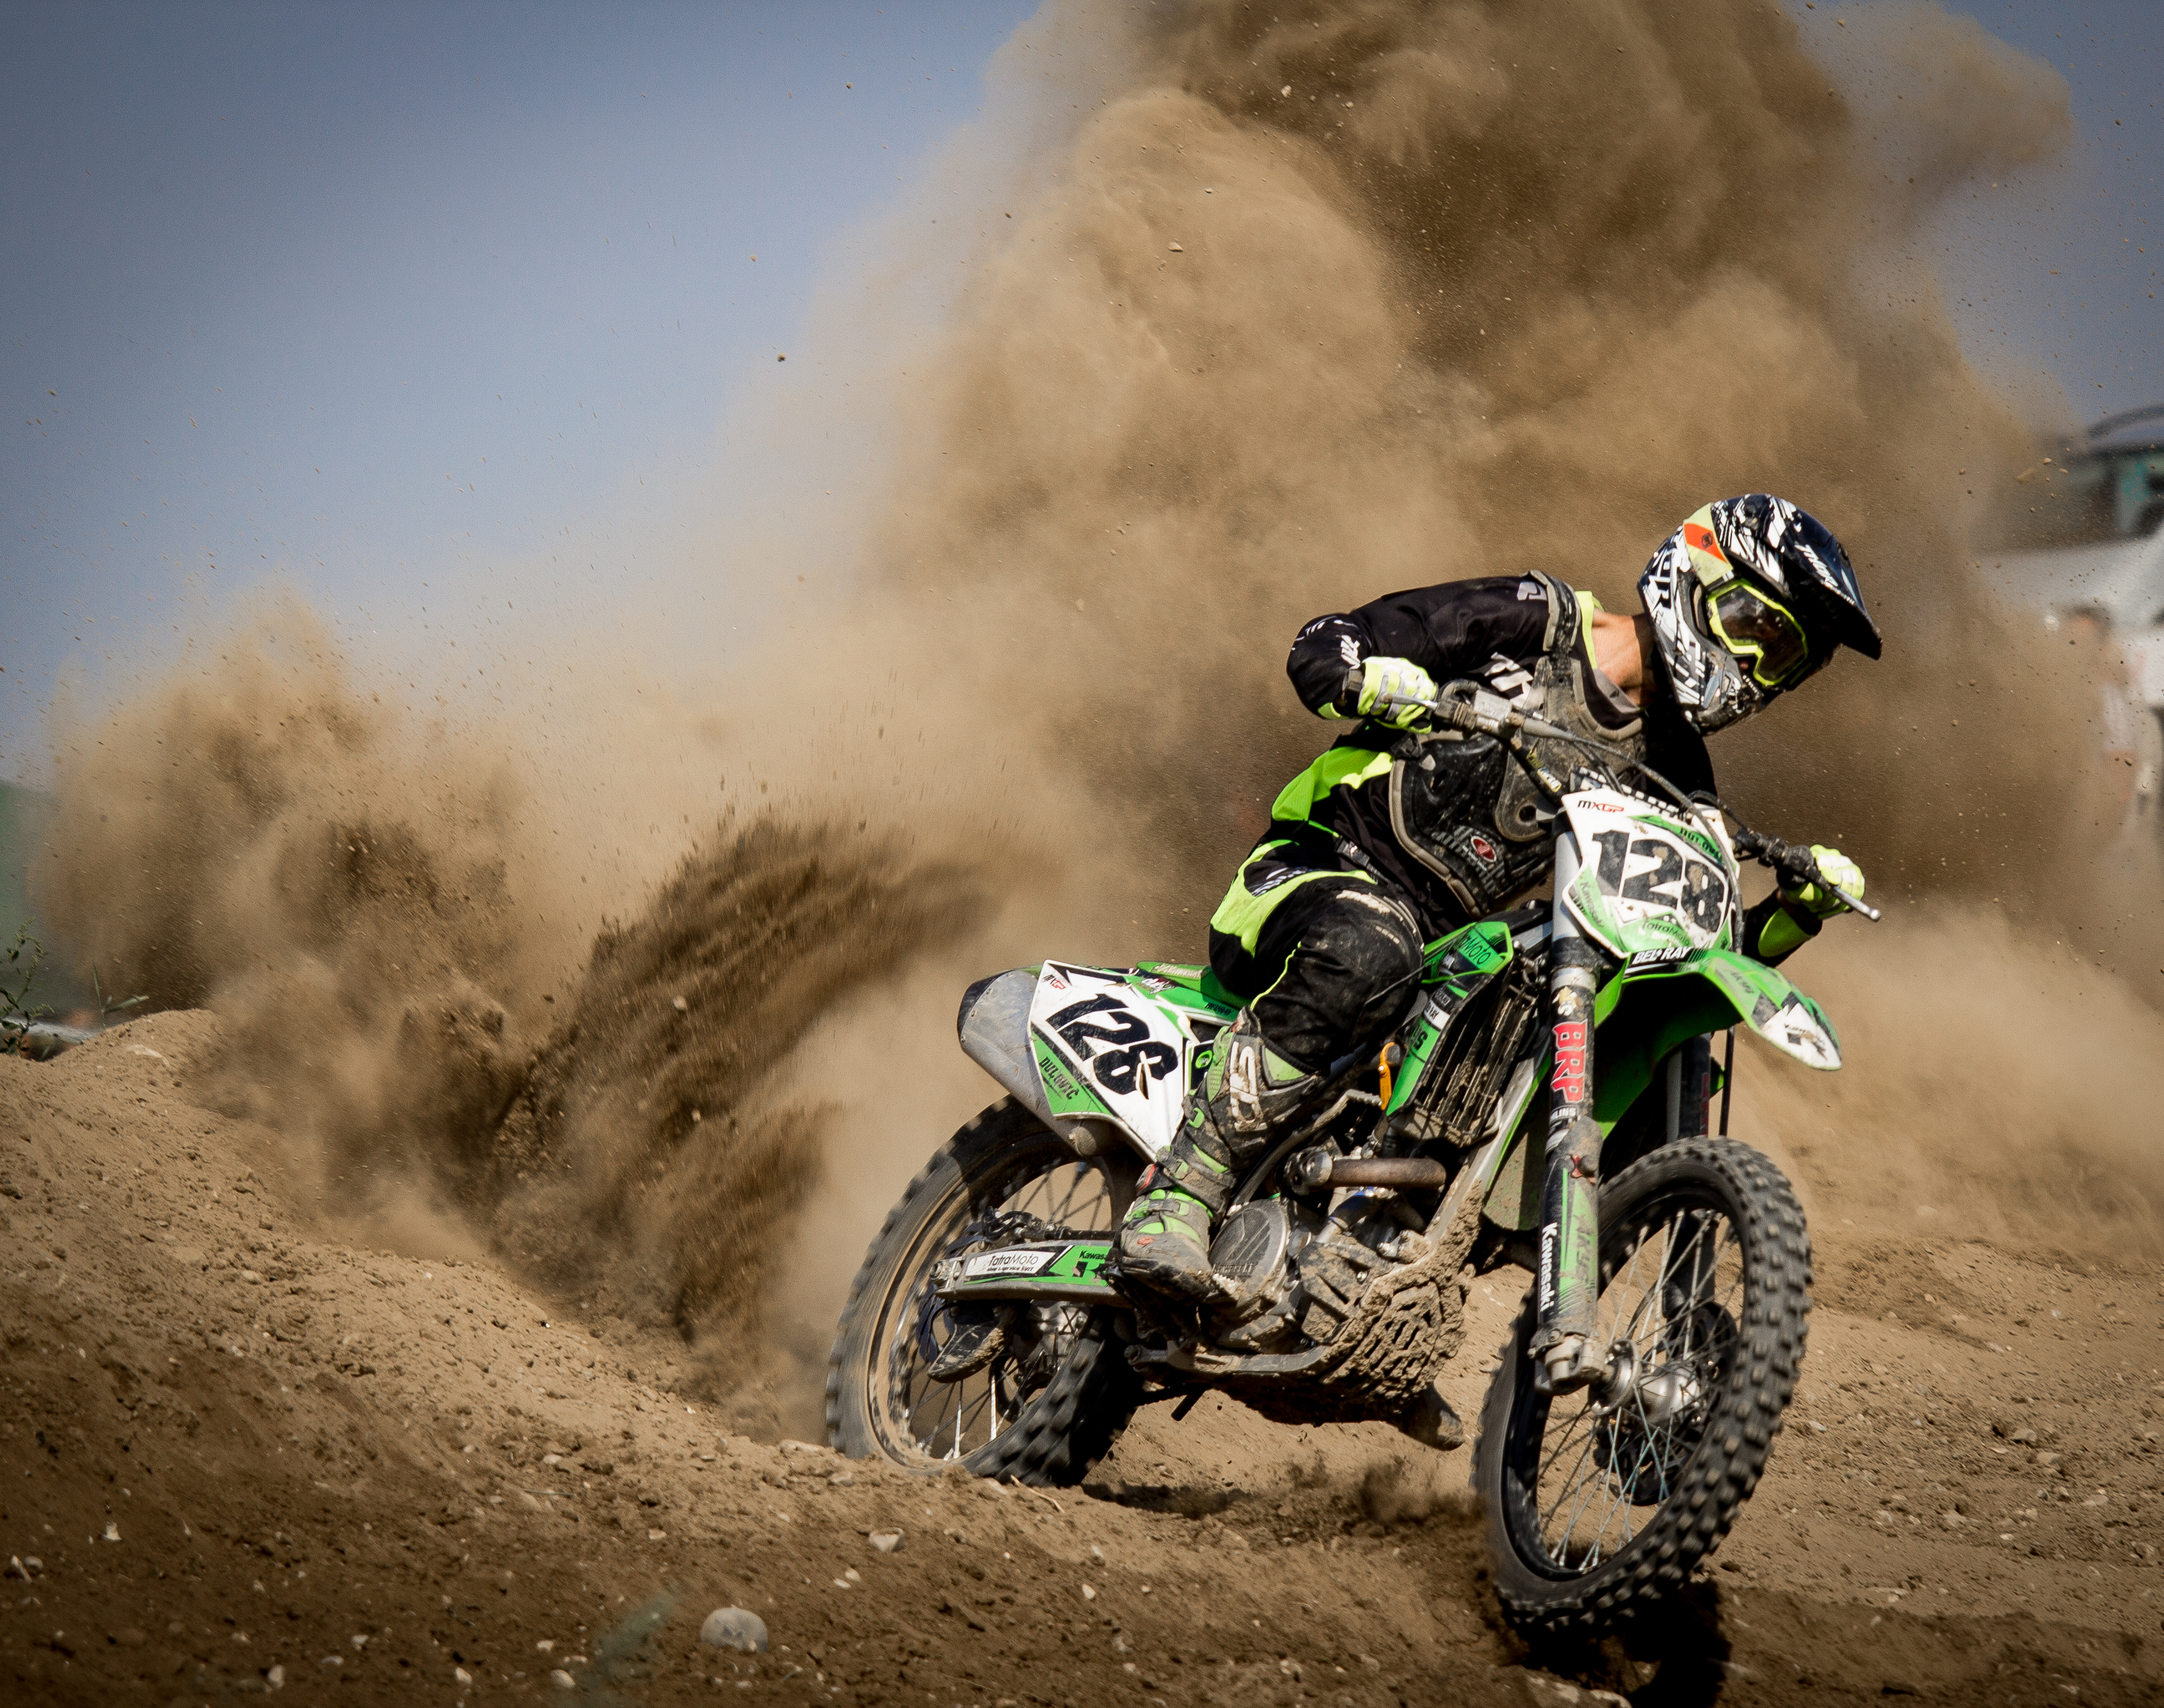 Disegni Motocross: Rider Riding Green Motocross Dirt Bike · Free Stock Photo